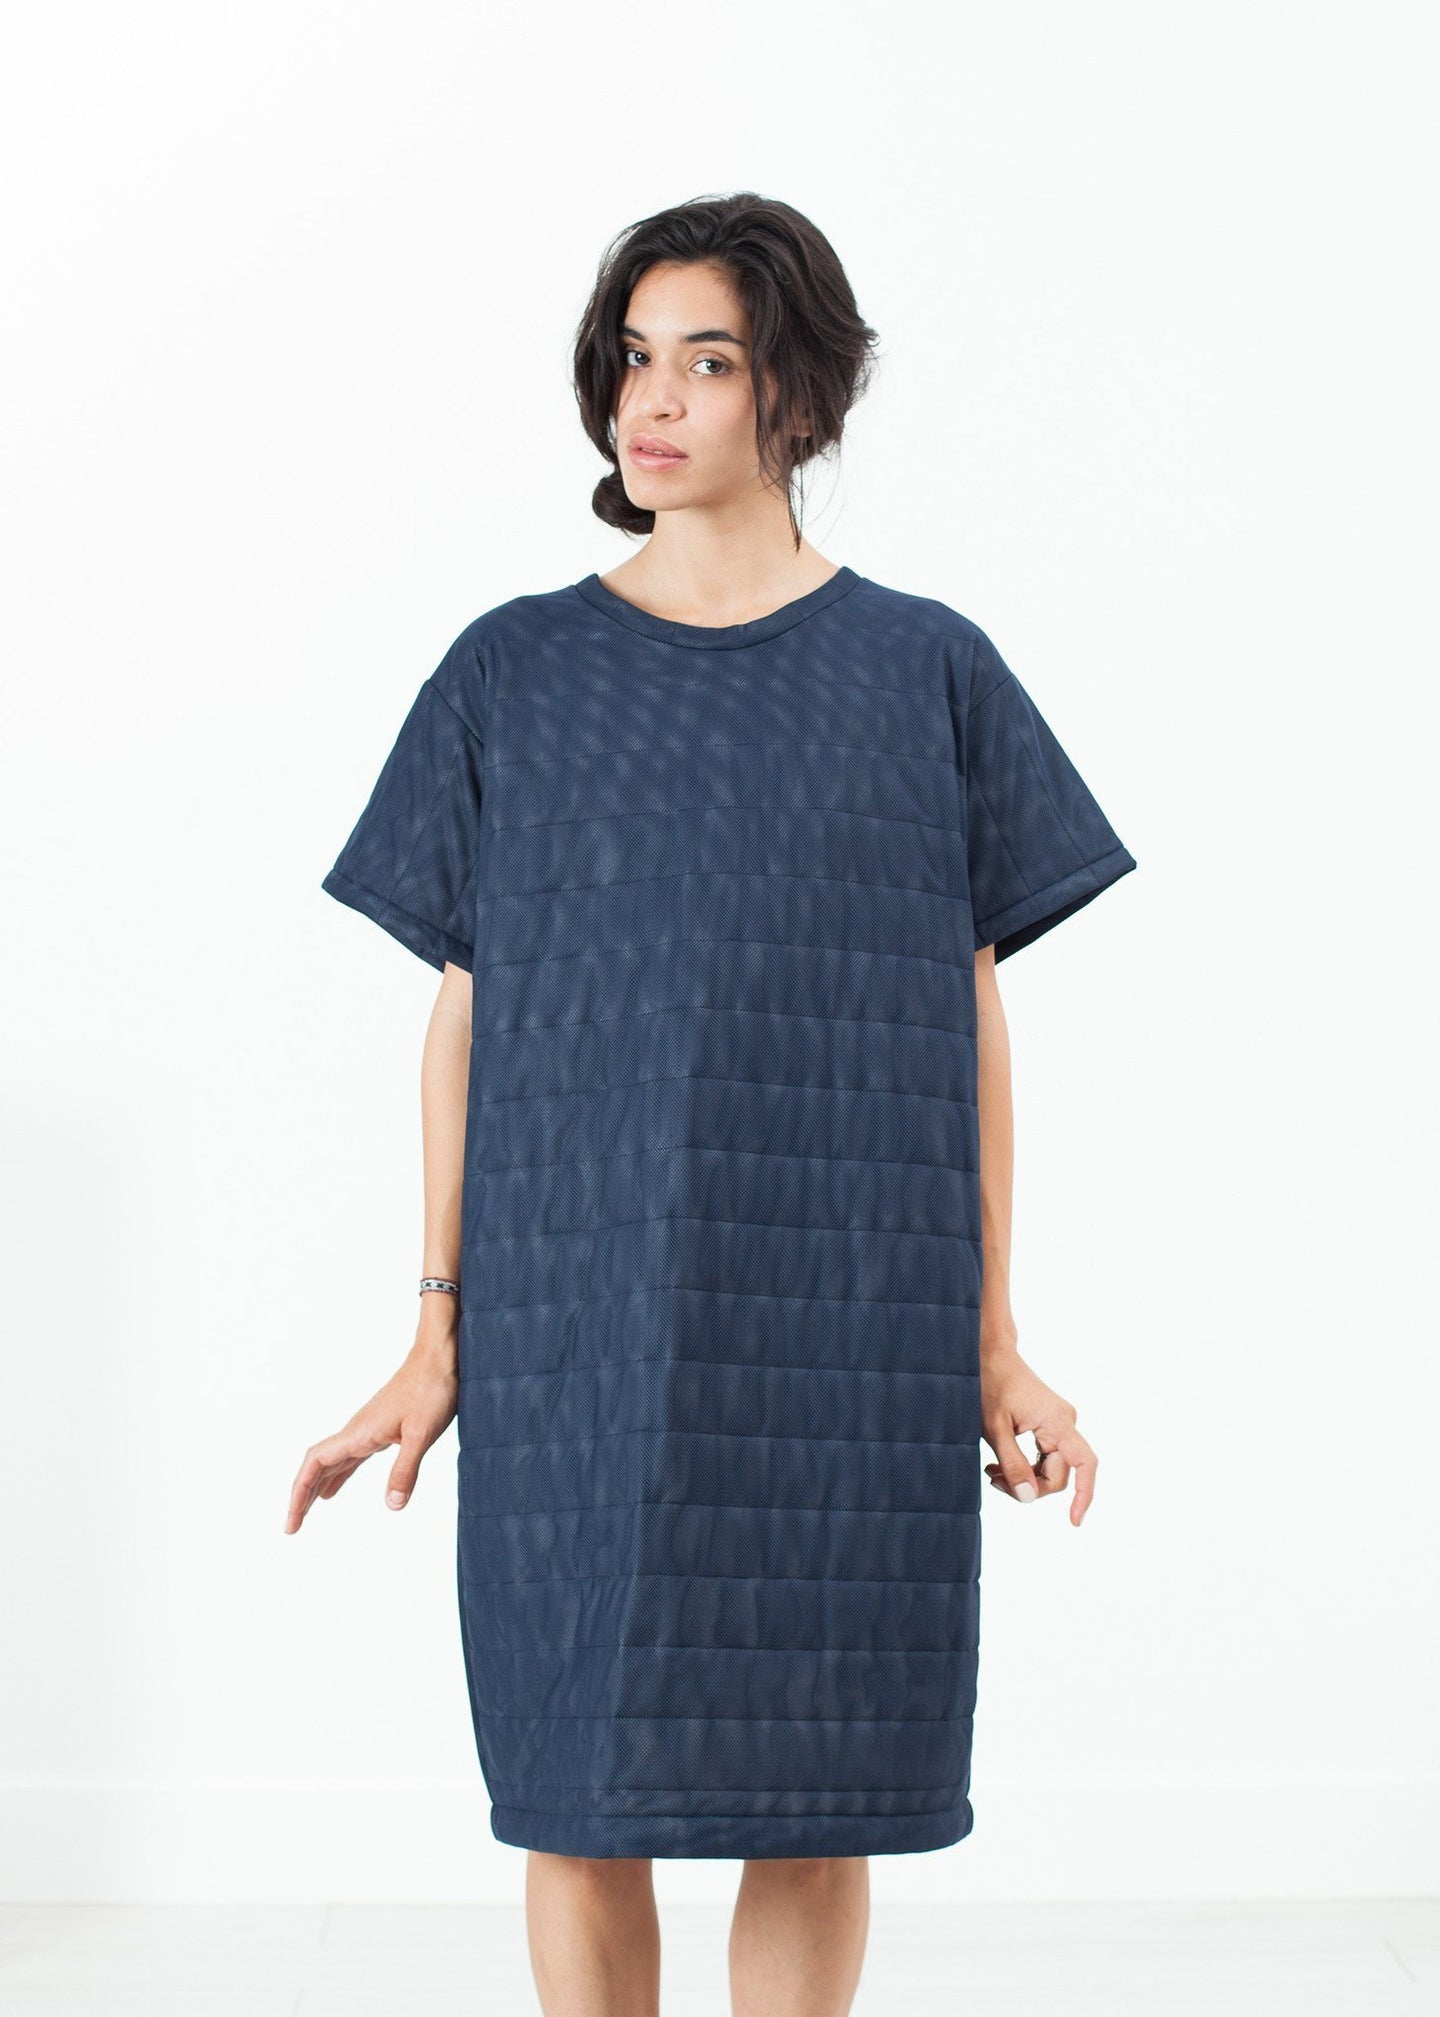 Quilted Mesh T-Shirt Dress in Navy